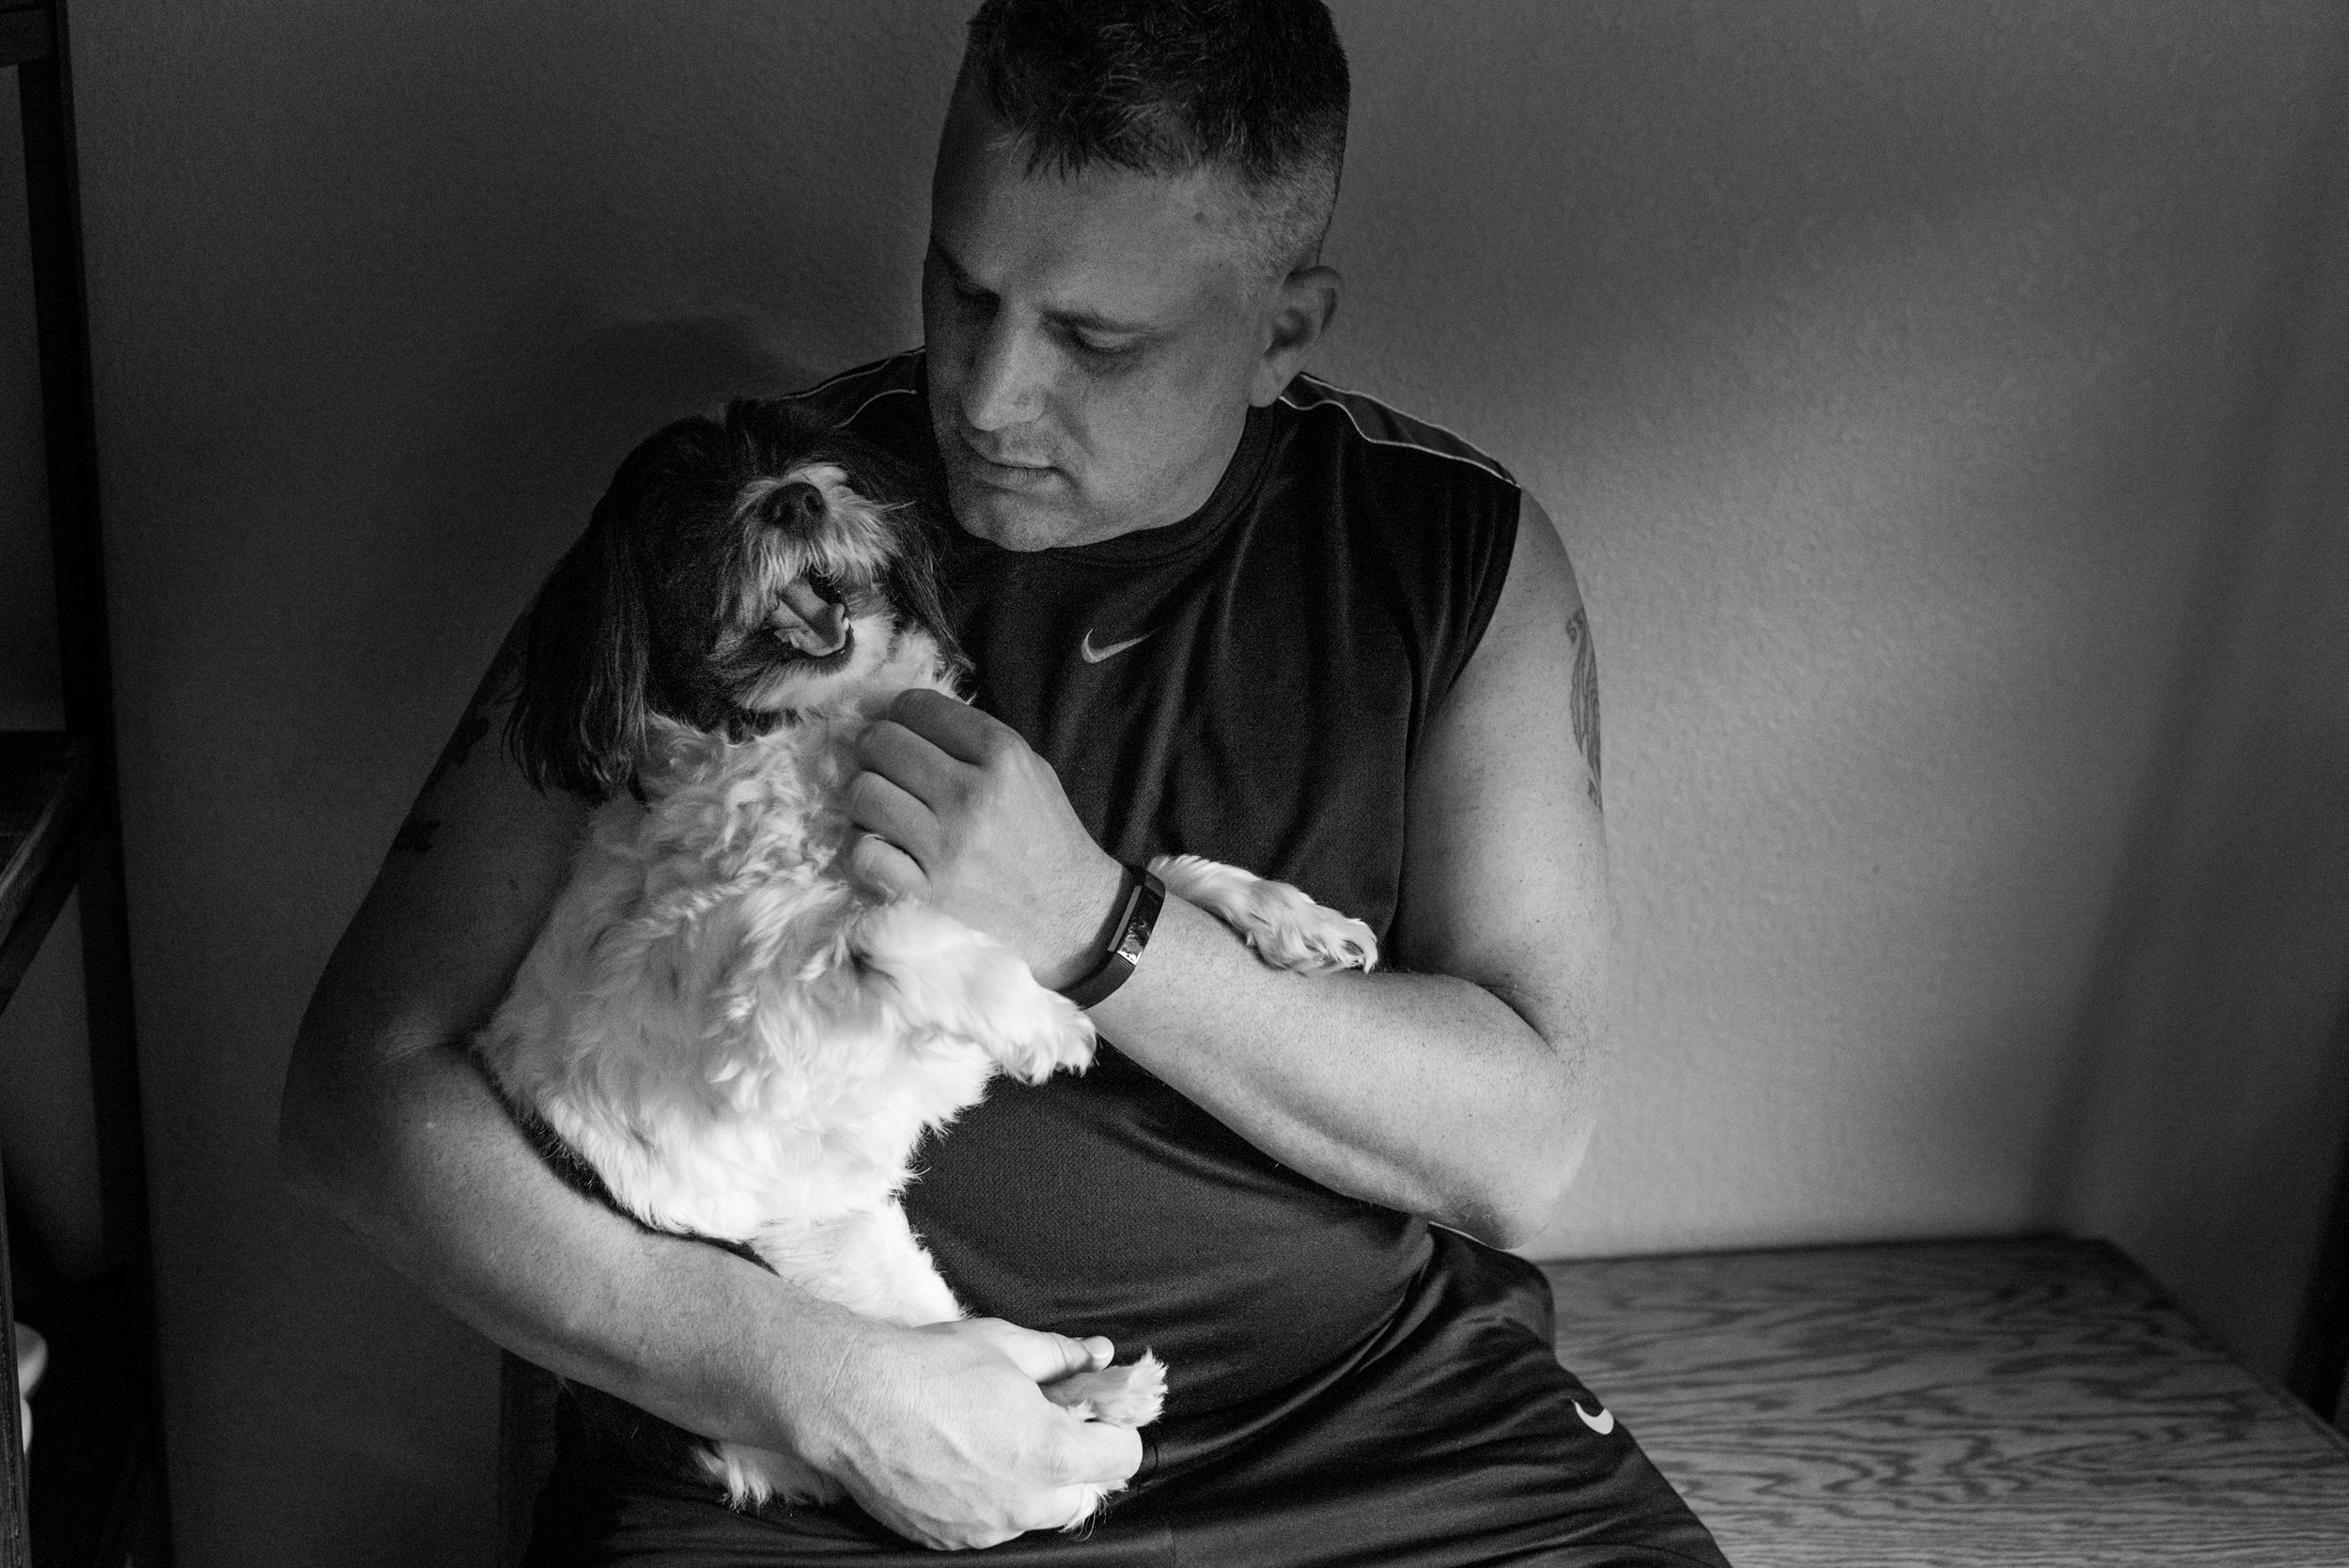 Man sitting, holding and petting small black and white dog